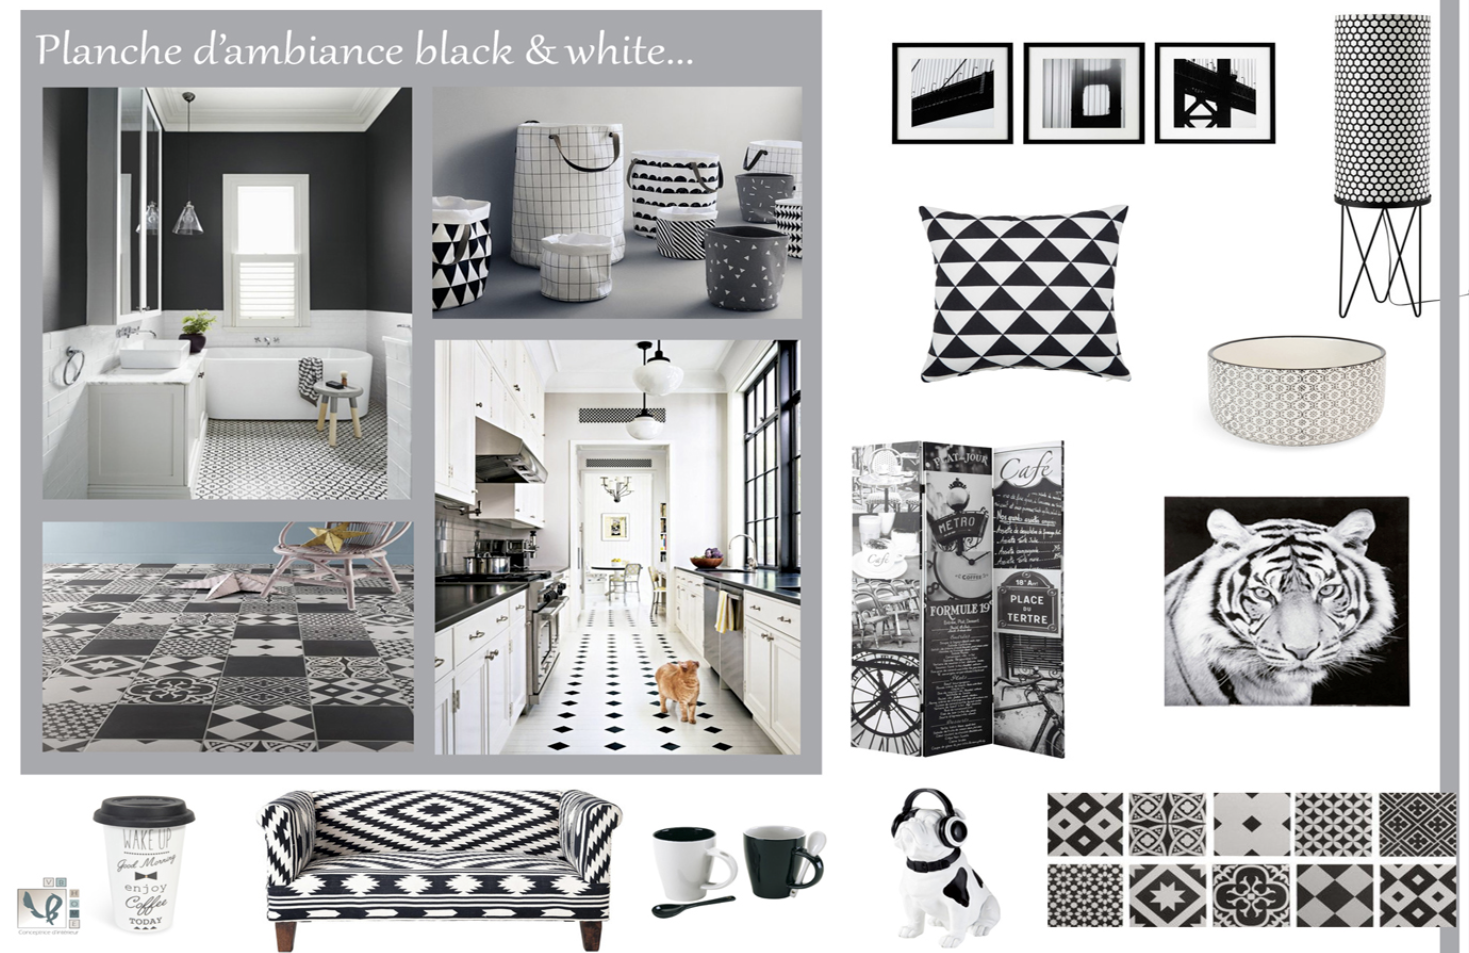 Planche d'ambiance black and white